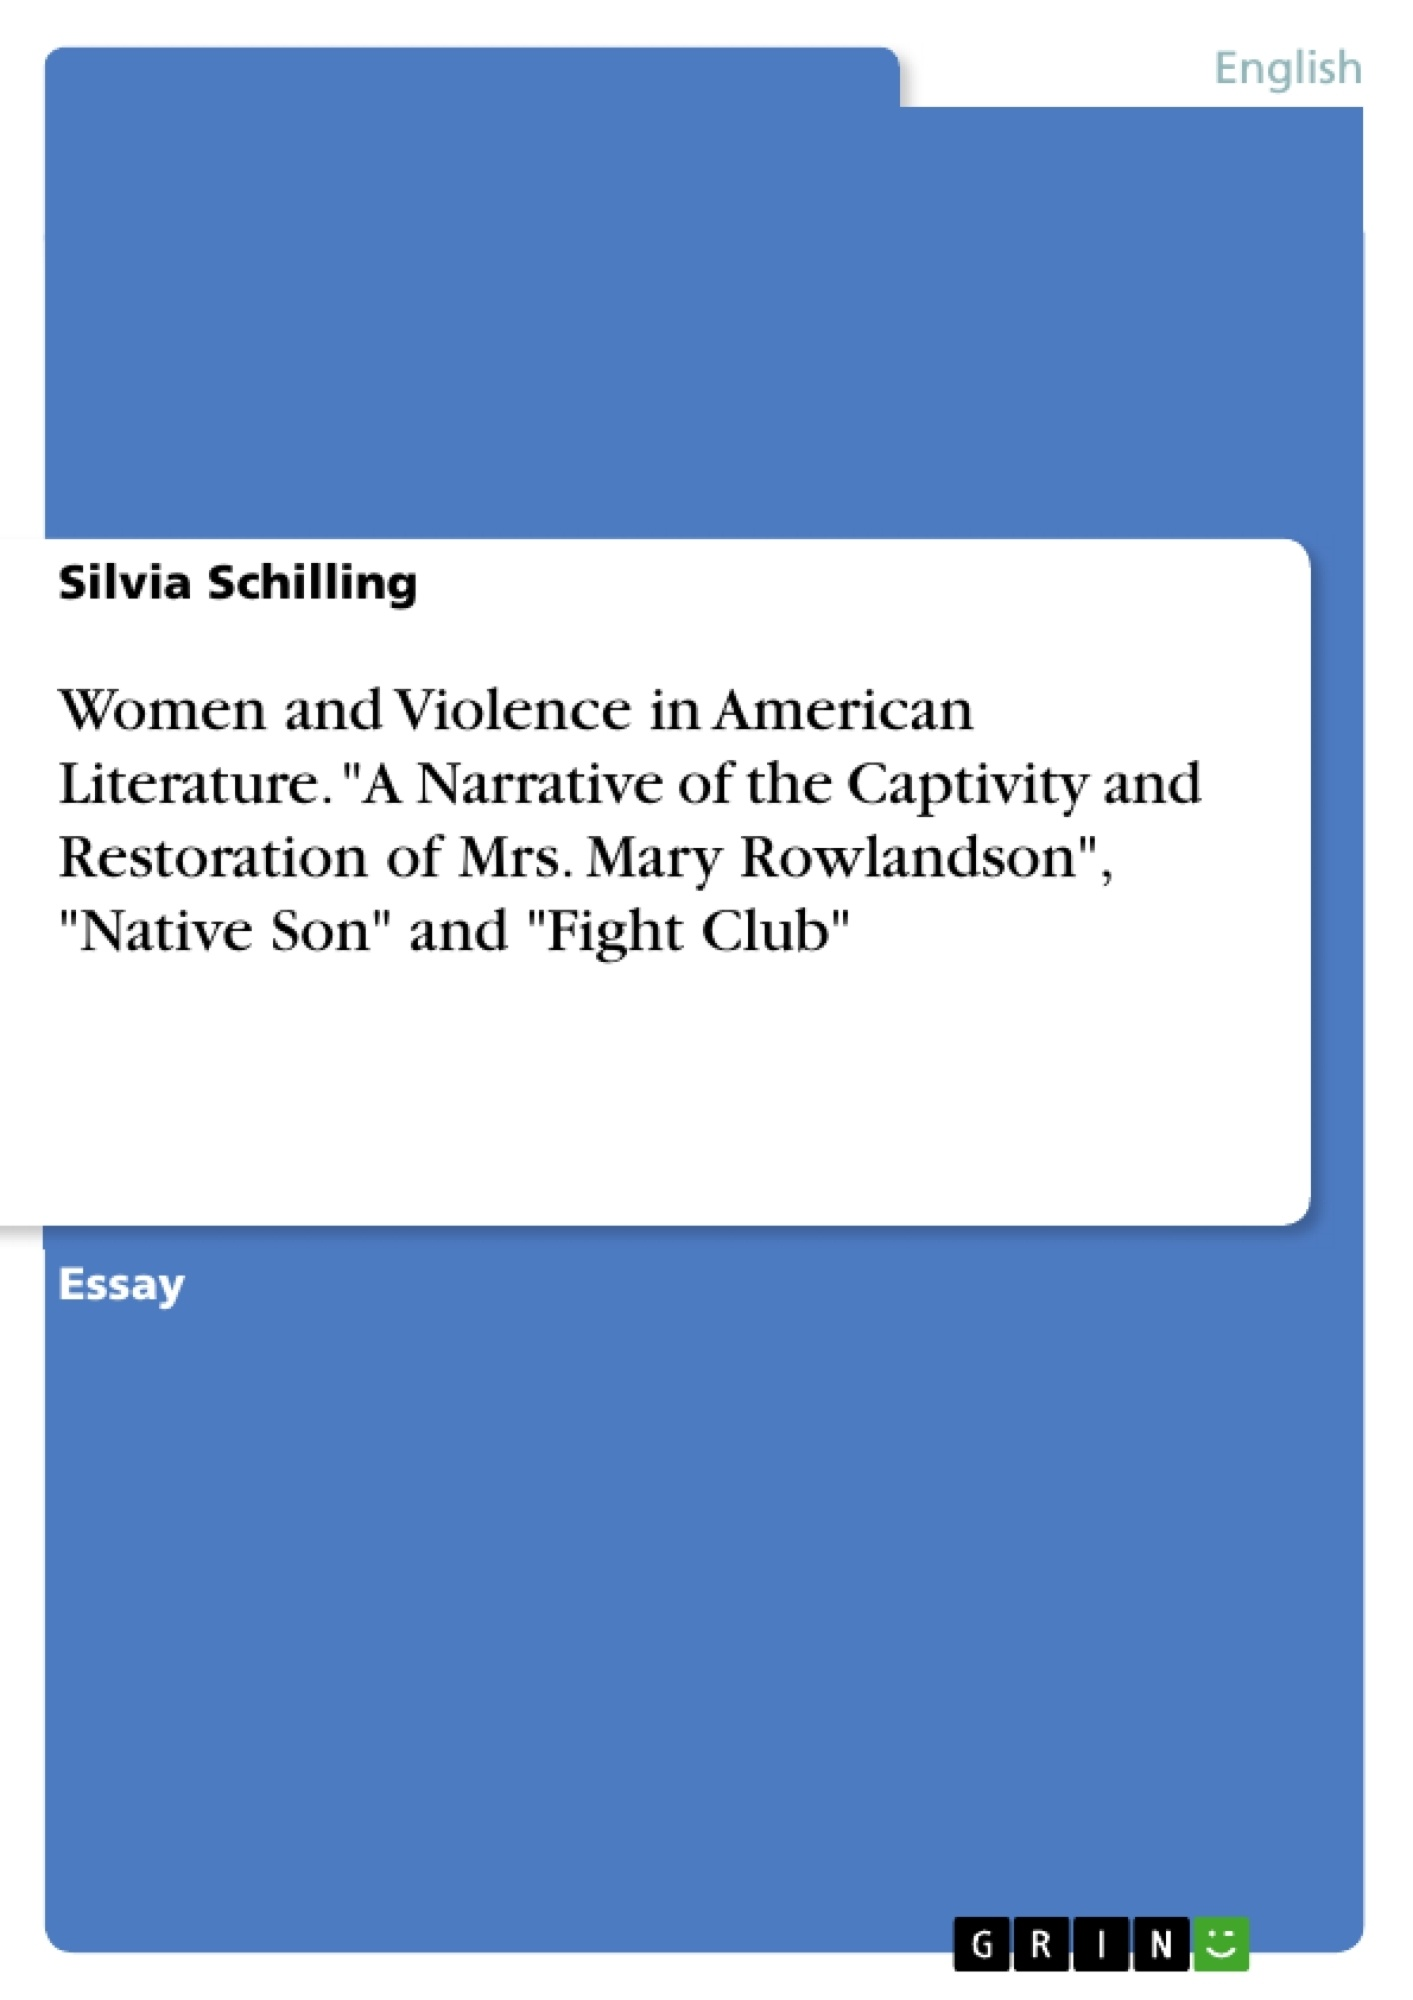 """Title: Women and Violence in American Literature. """"A Narrative of the Captivity and Restoration of Mrs. Mary Rowlandson"""", """"Native Son"""" and """"Fight Club"""""""